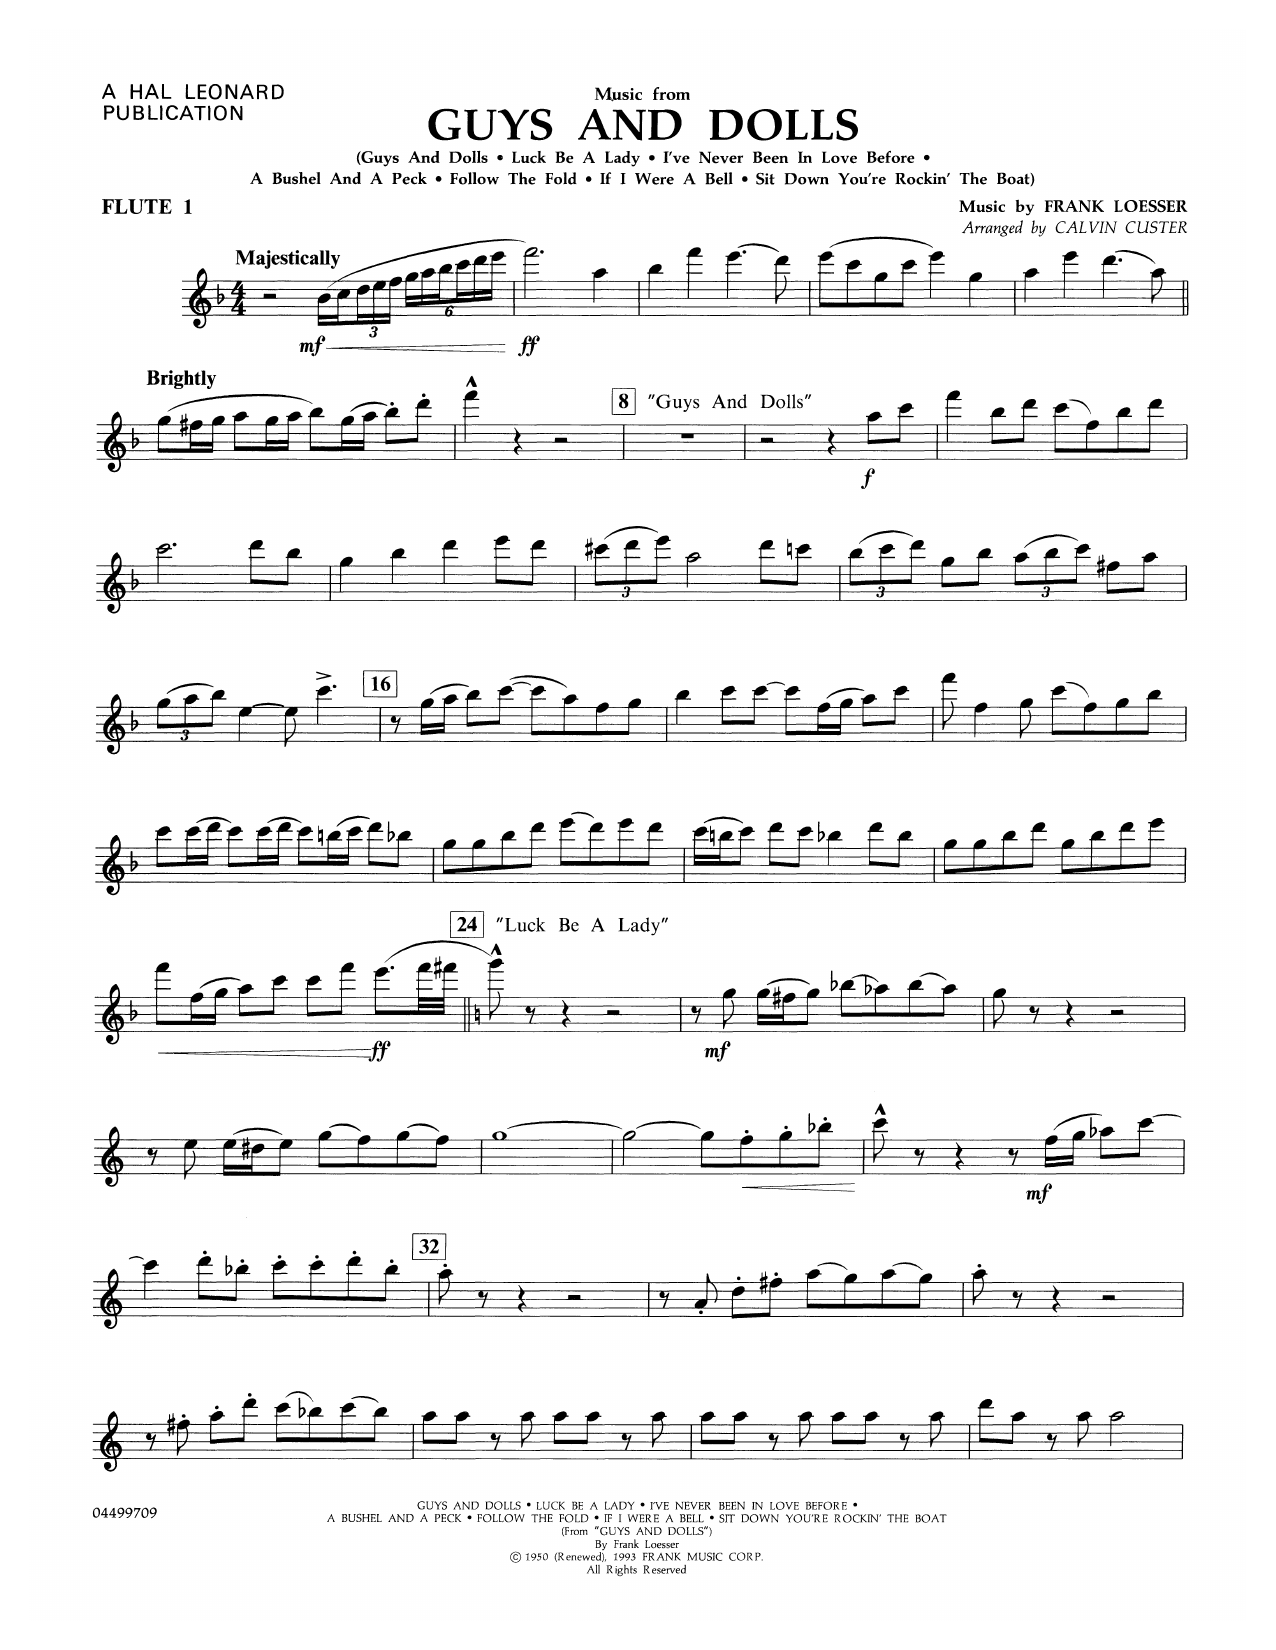 Frank Loesser Music from Guys and Dolls (arr. Calvin Custer) - Flute 1 sheet music notes and chords. Download Printable PDF.